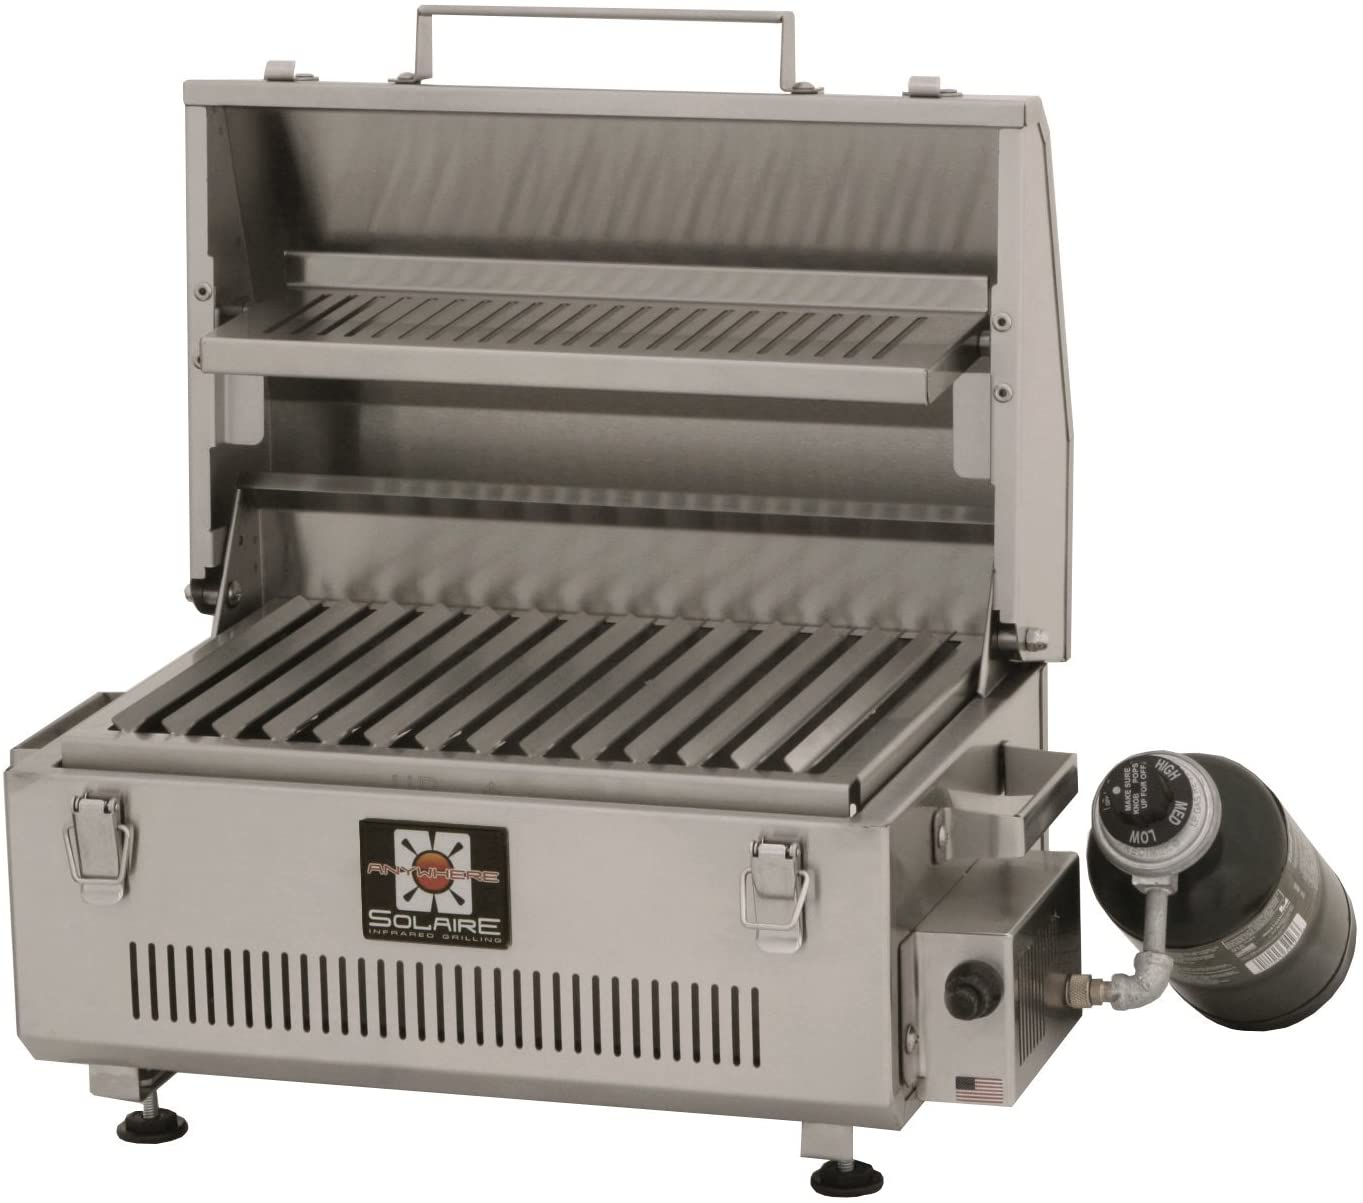 Solaire SOL-IR17BWR Portable Infrared Grill